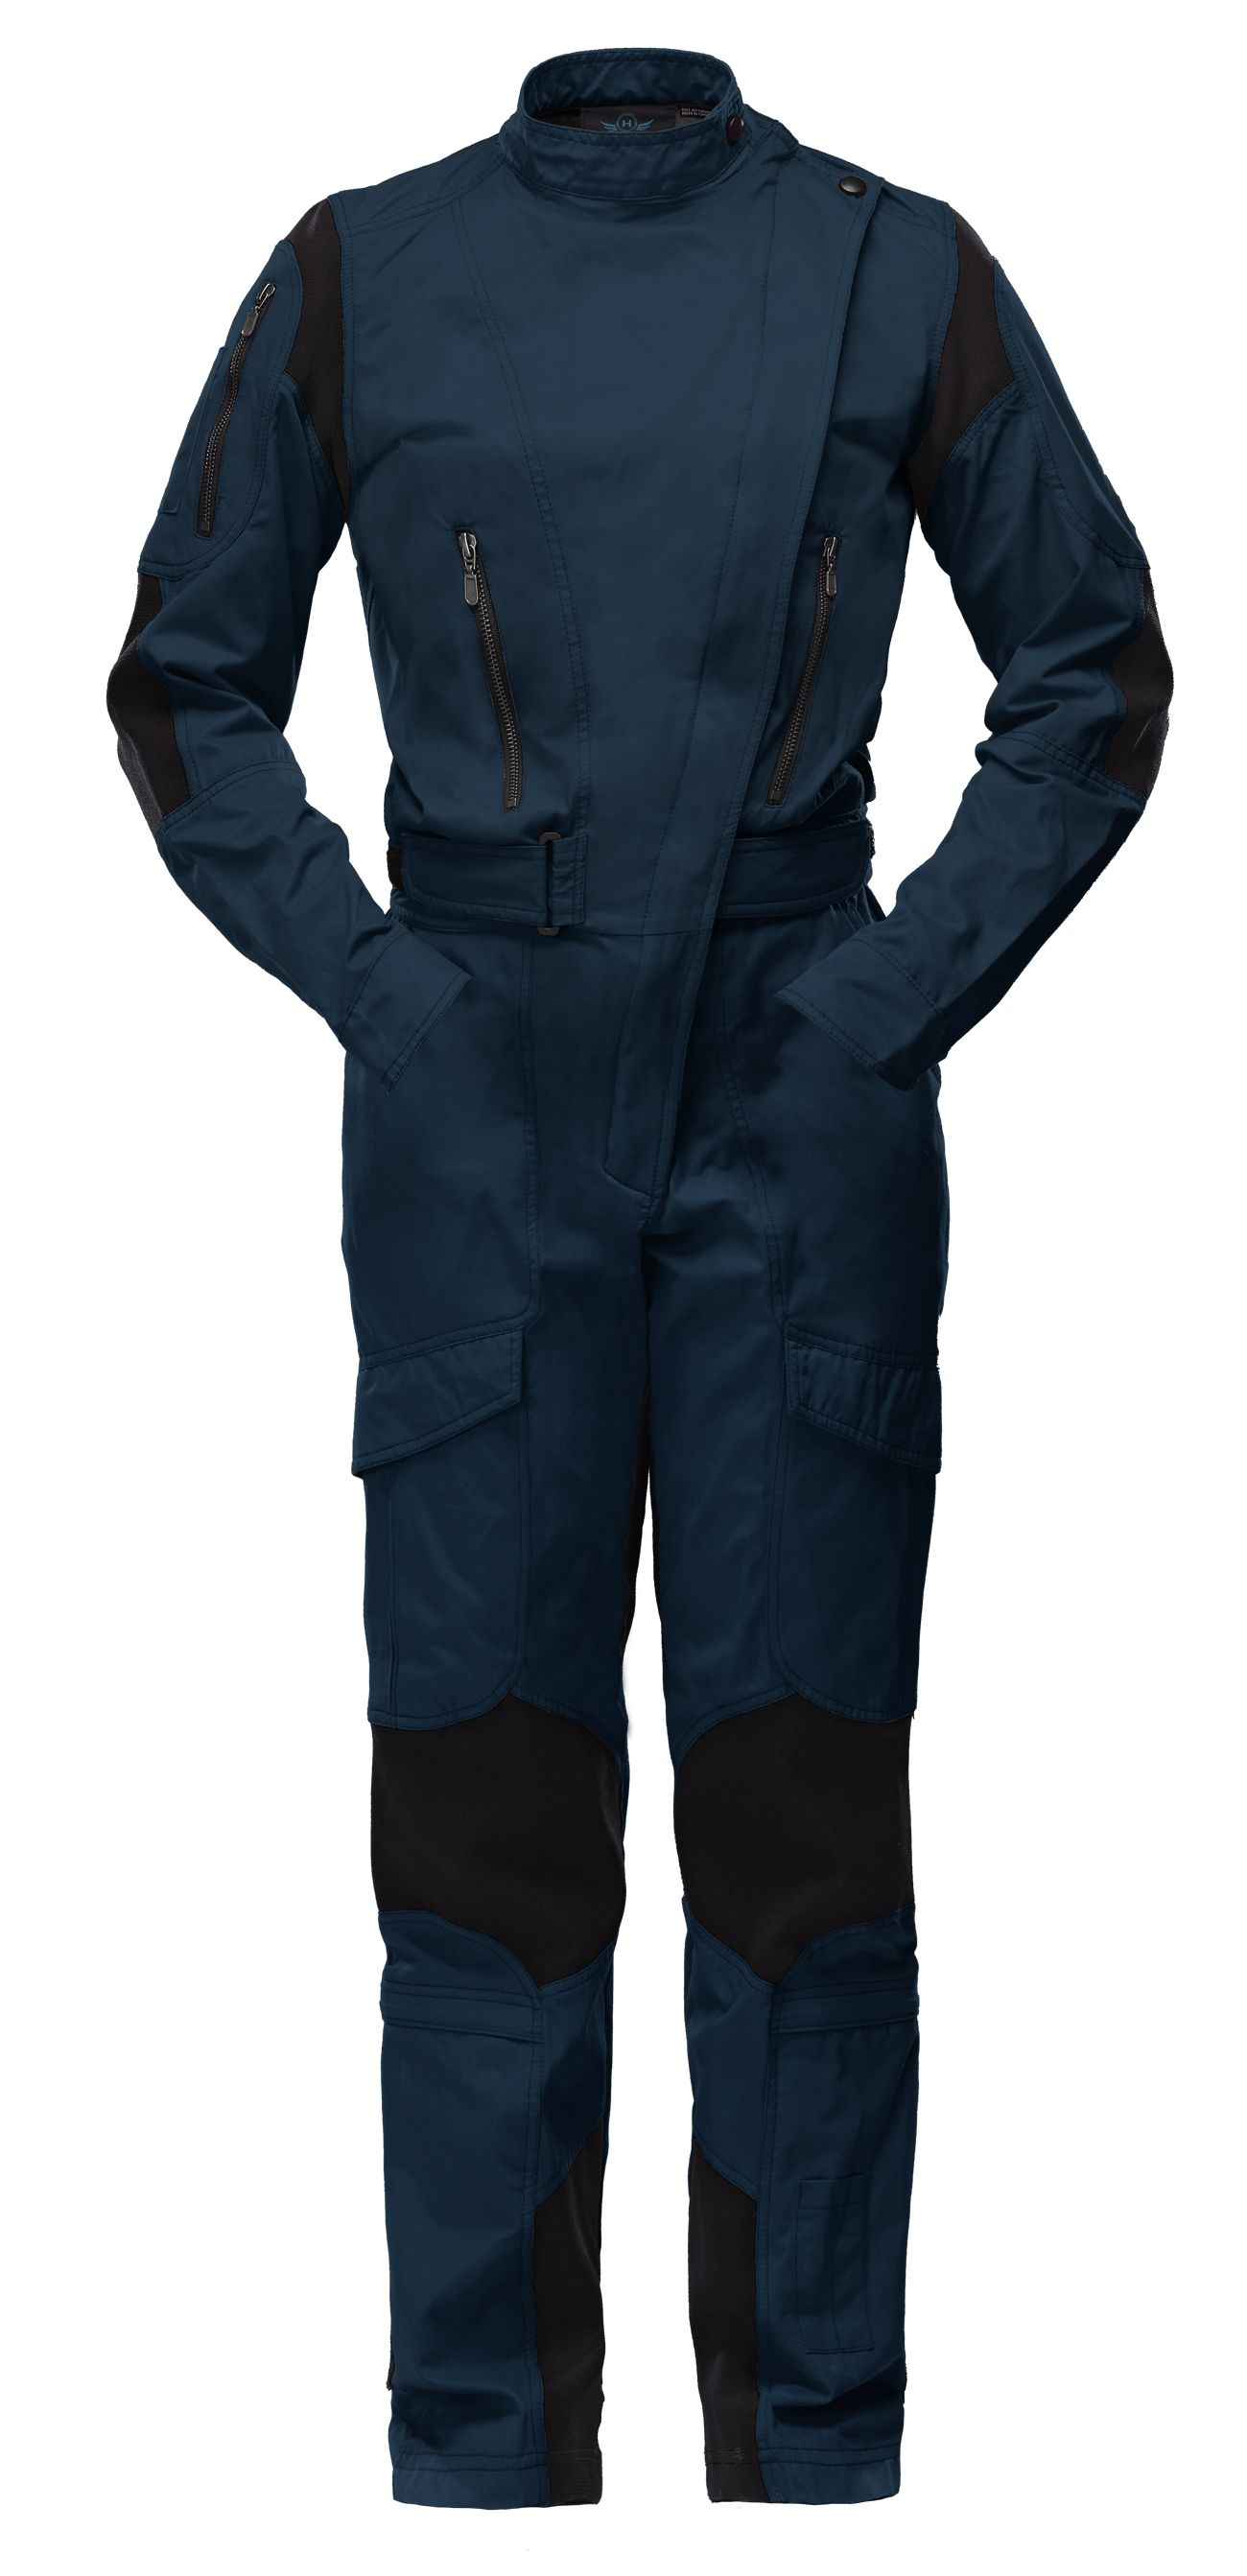 3360dfca3ae WOMEN - The Rotor flight suit was specifically adapted to the female  figure. Its design and ergonomic cut translate to style and greater comfort  for the ...